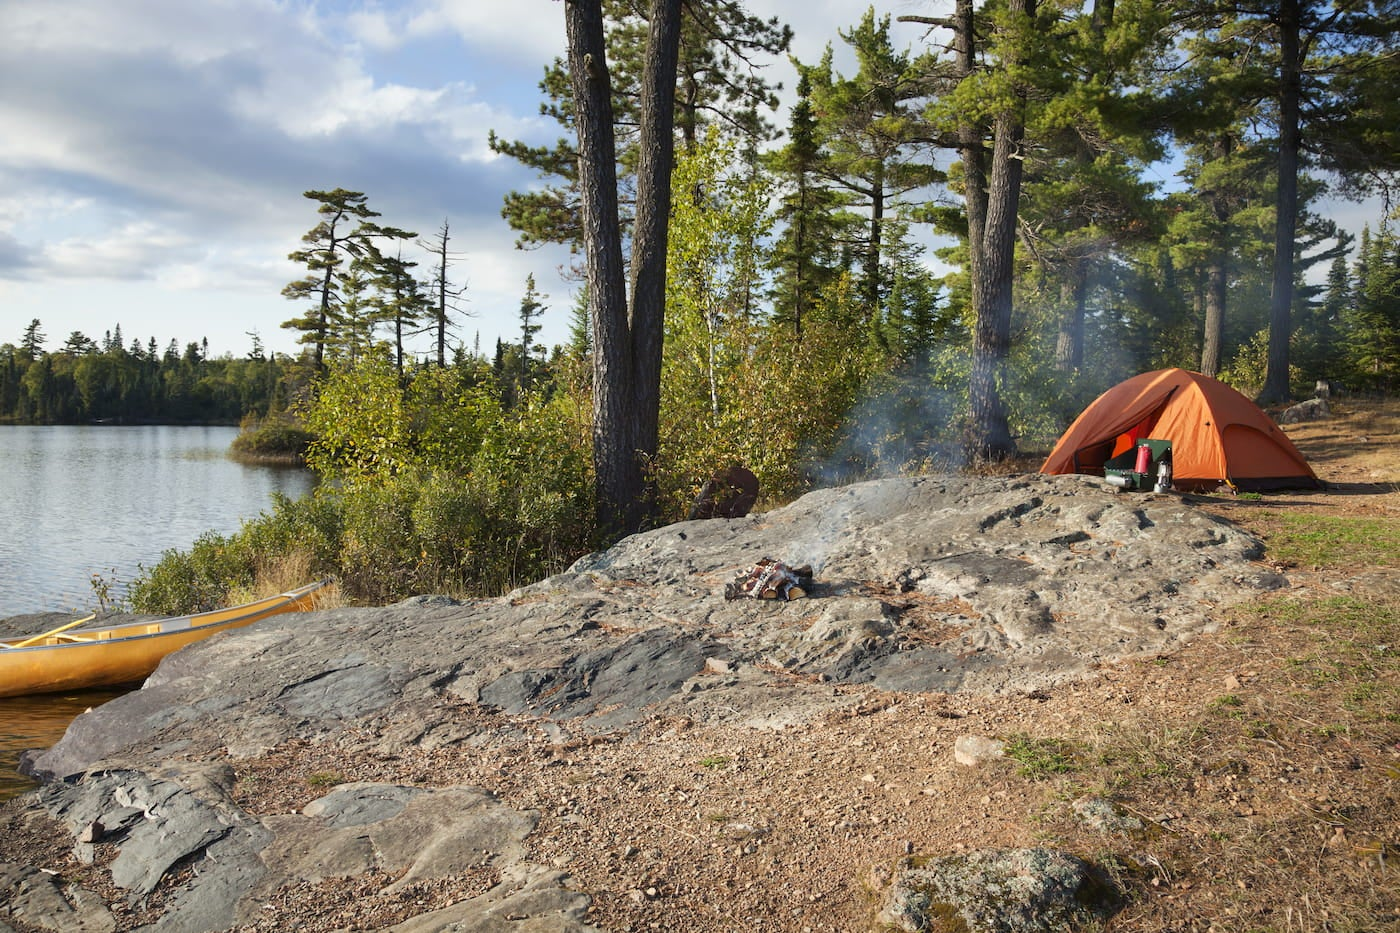 Tent set up on the rocks beside a lack where a canoe is hitched.